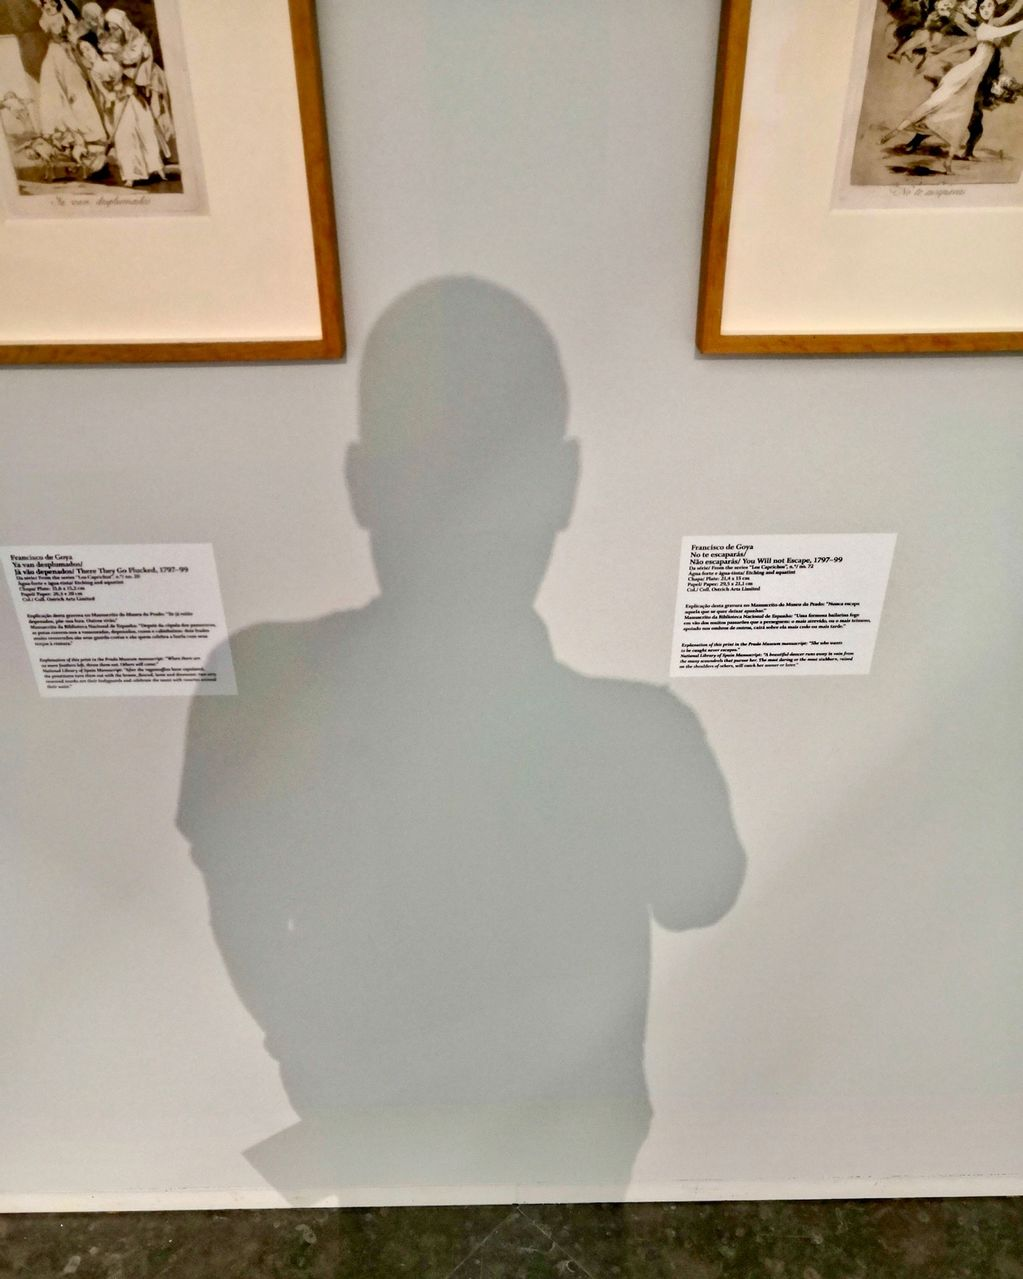 Self Portrait as if I'm Caught Between the Moon and Francisco de Goya (Cascais) 2019